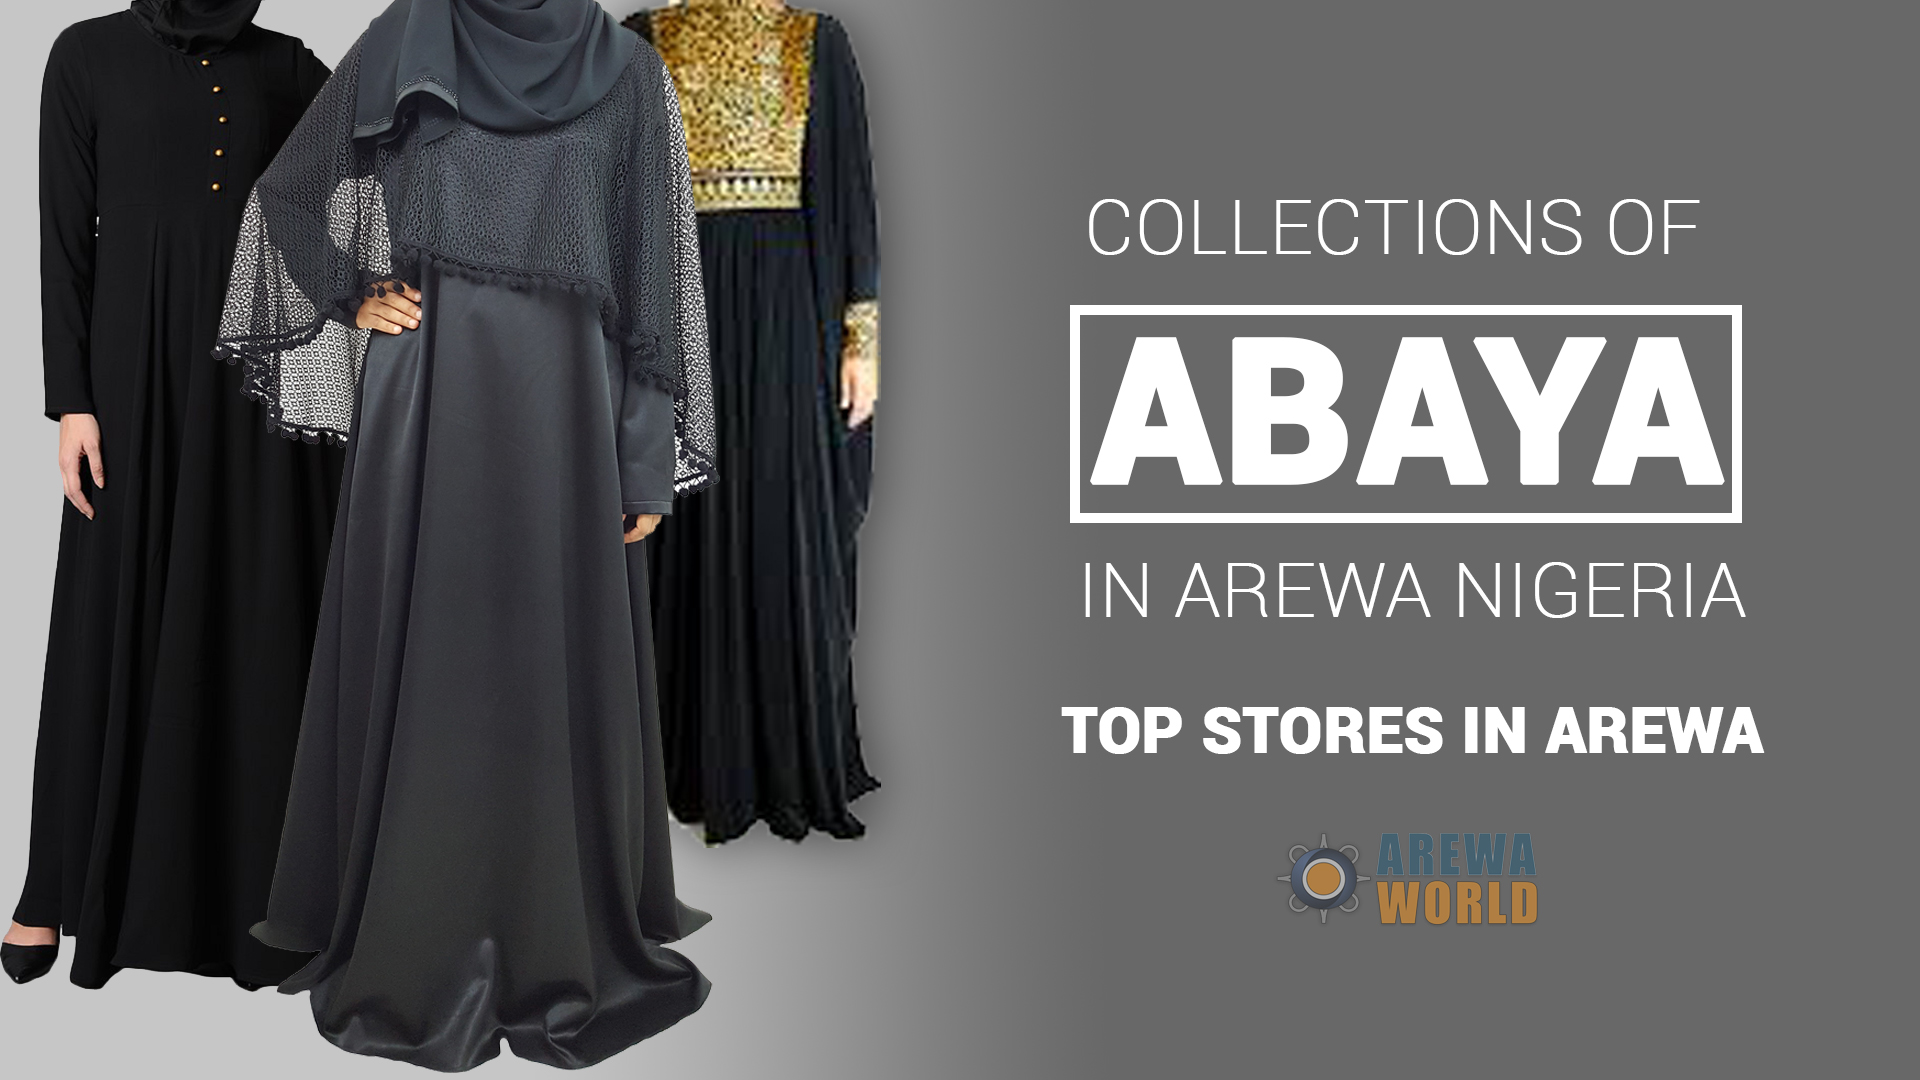 10 Abaya places in Arewa, Nigeria